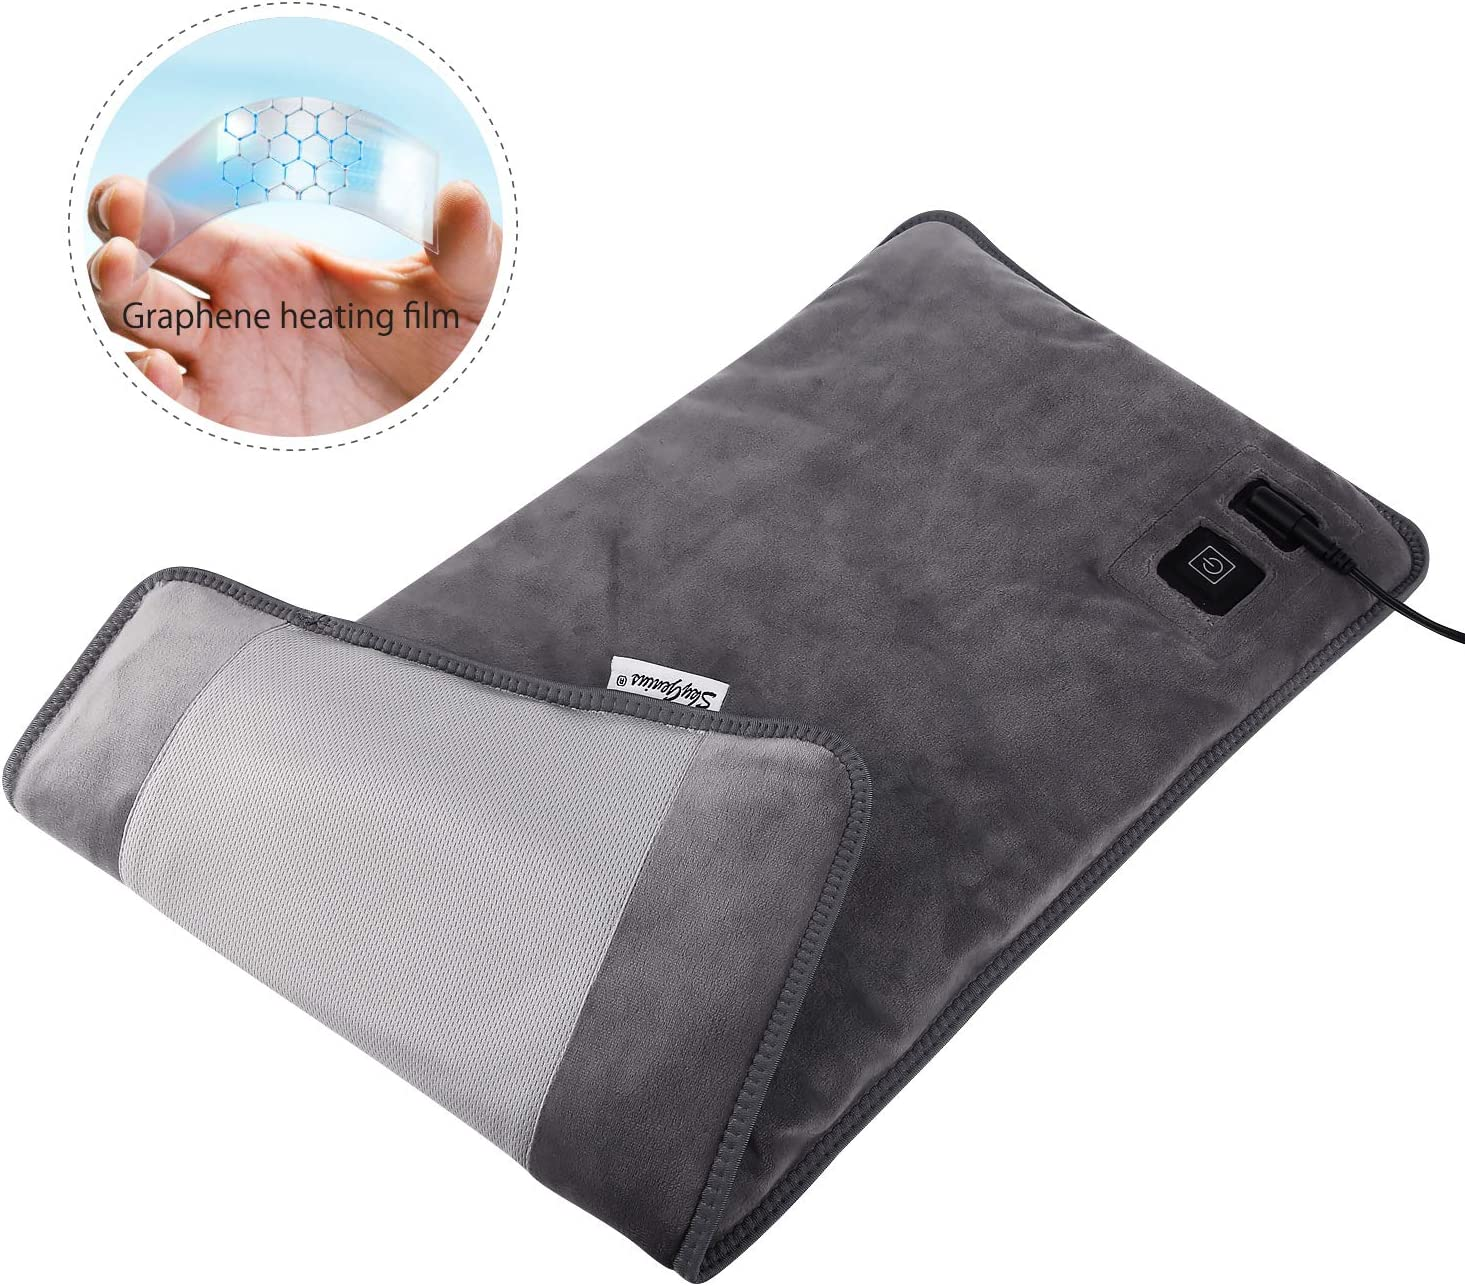 Far Infrared Electric Heating Pad for Back Pain, Heating Pads with Innovative Graphene Heating Films, for Lower Back, Cramps, Pain Relief - Large Size 12 * 24inches